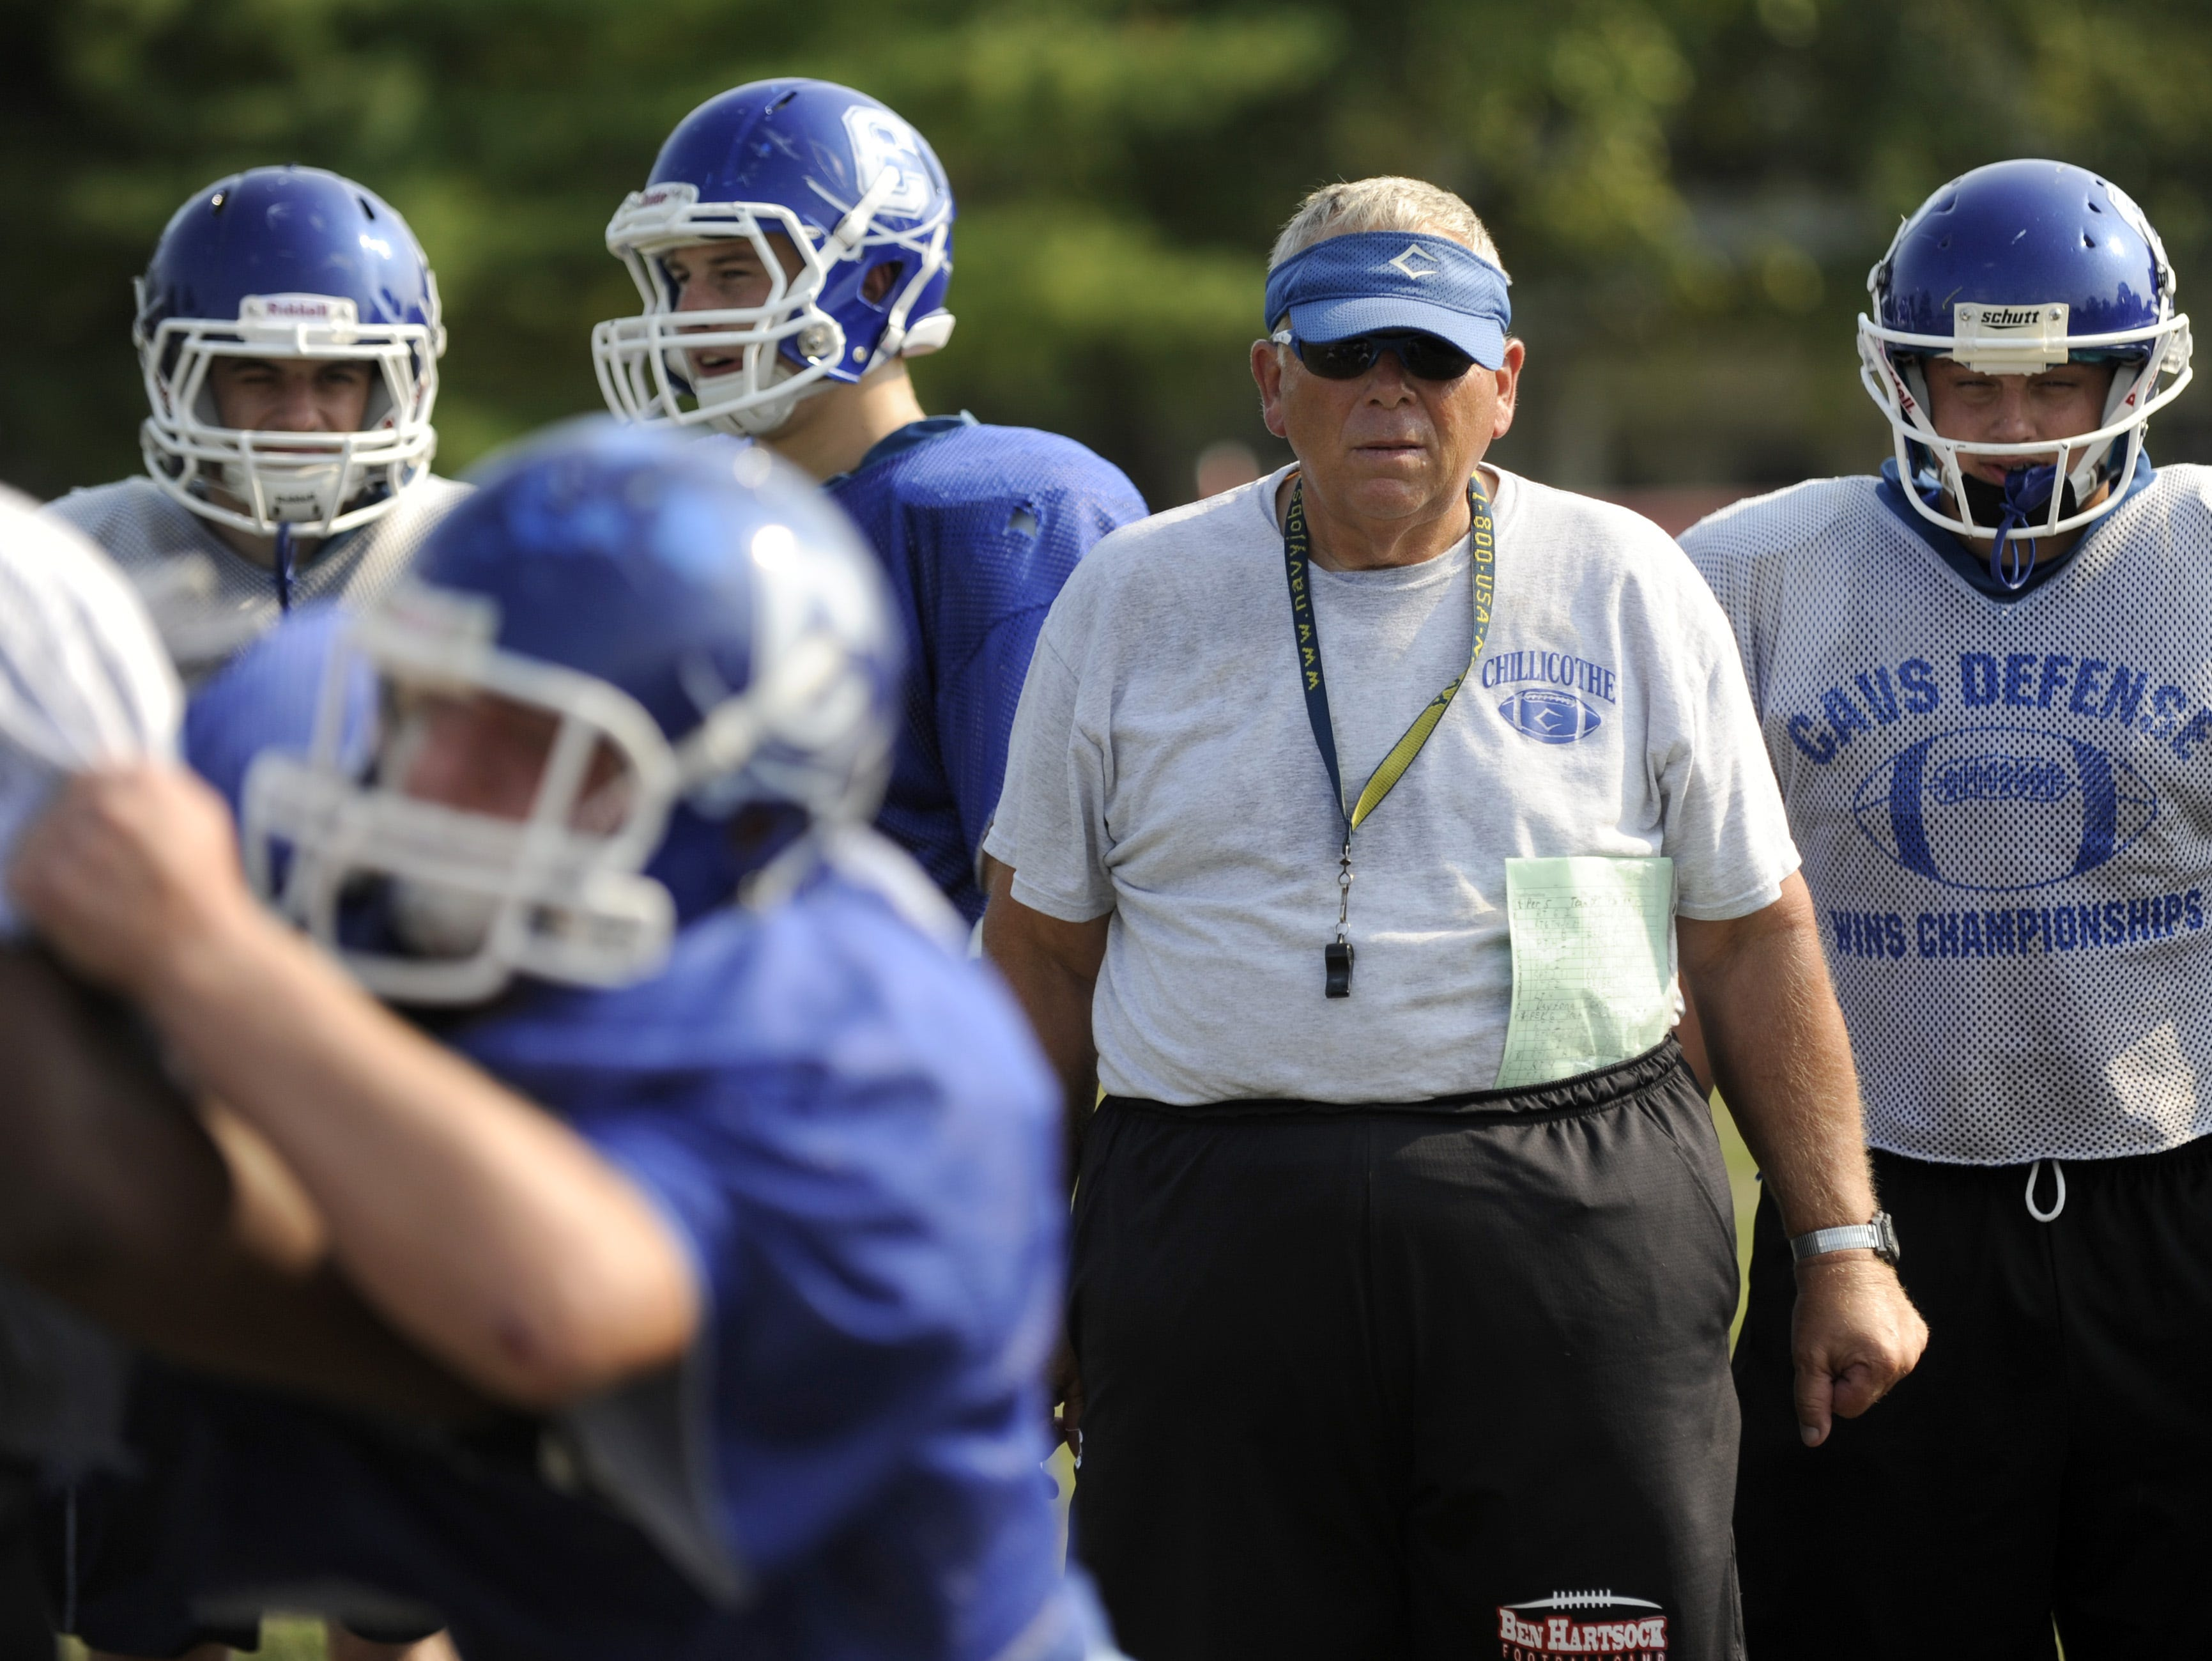 Chillicothe coach Ron Hinton observes drills during a September practice this past season.